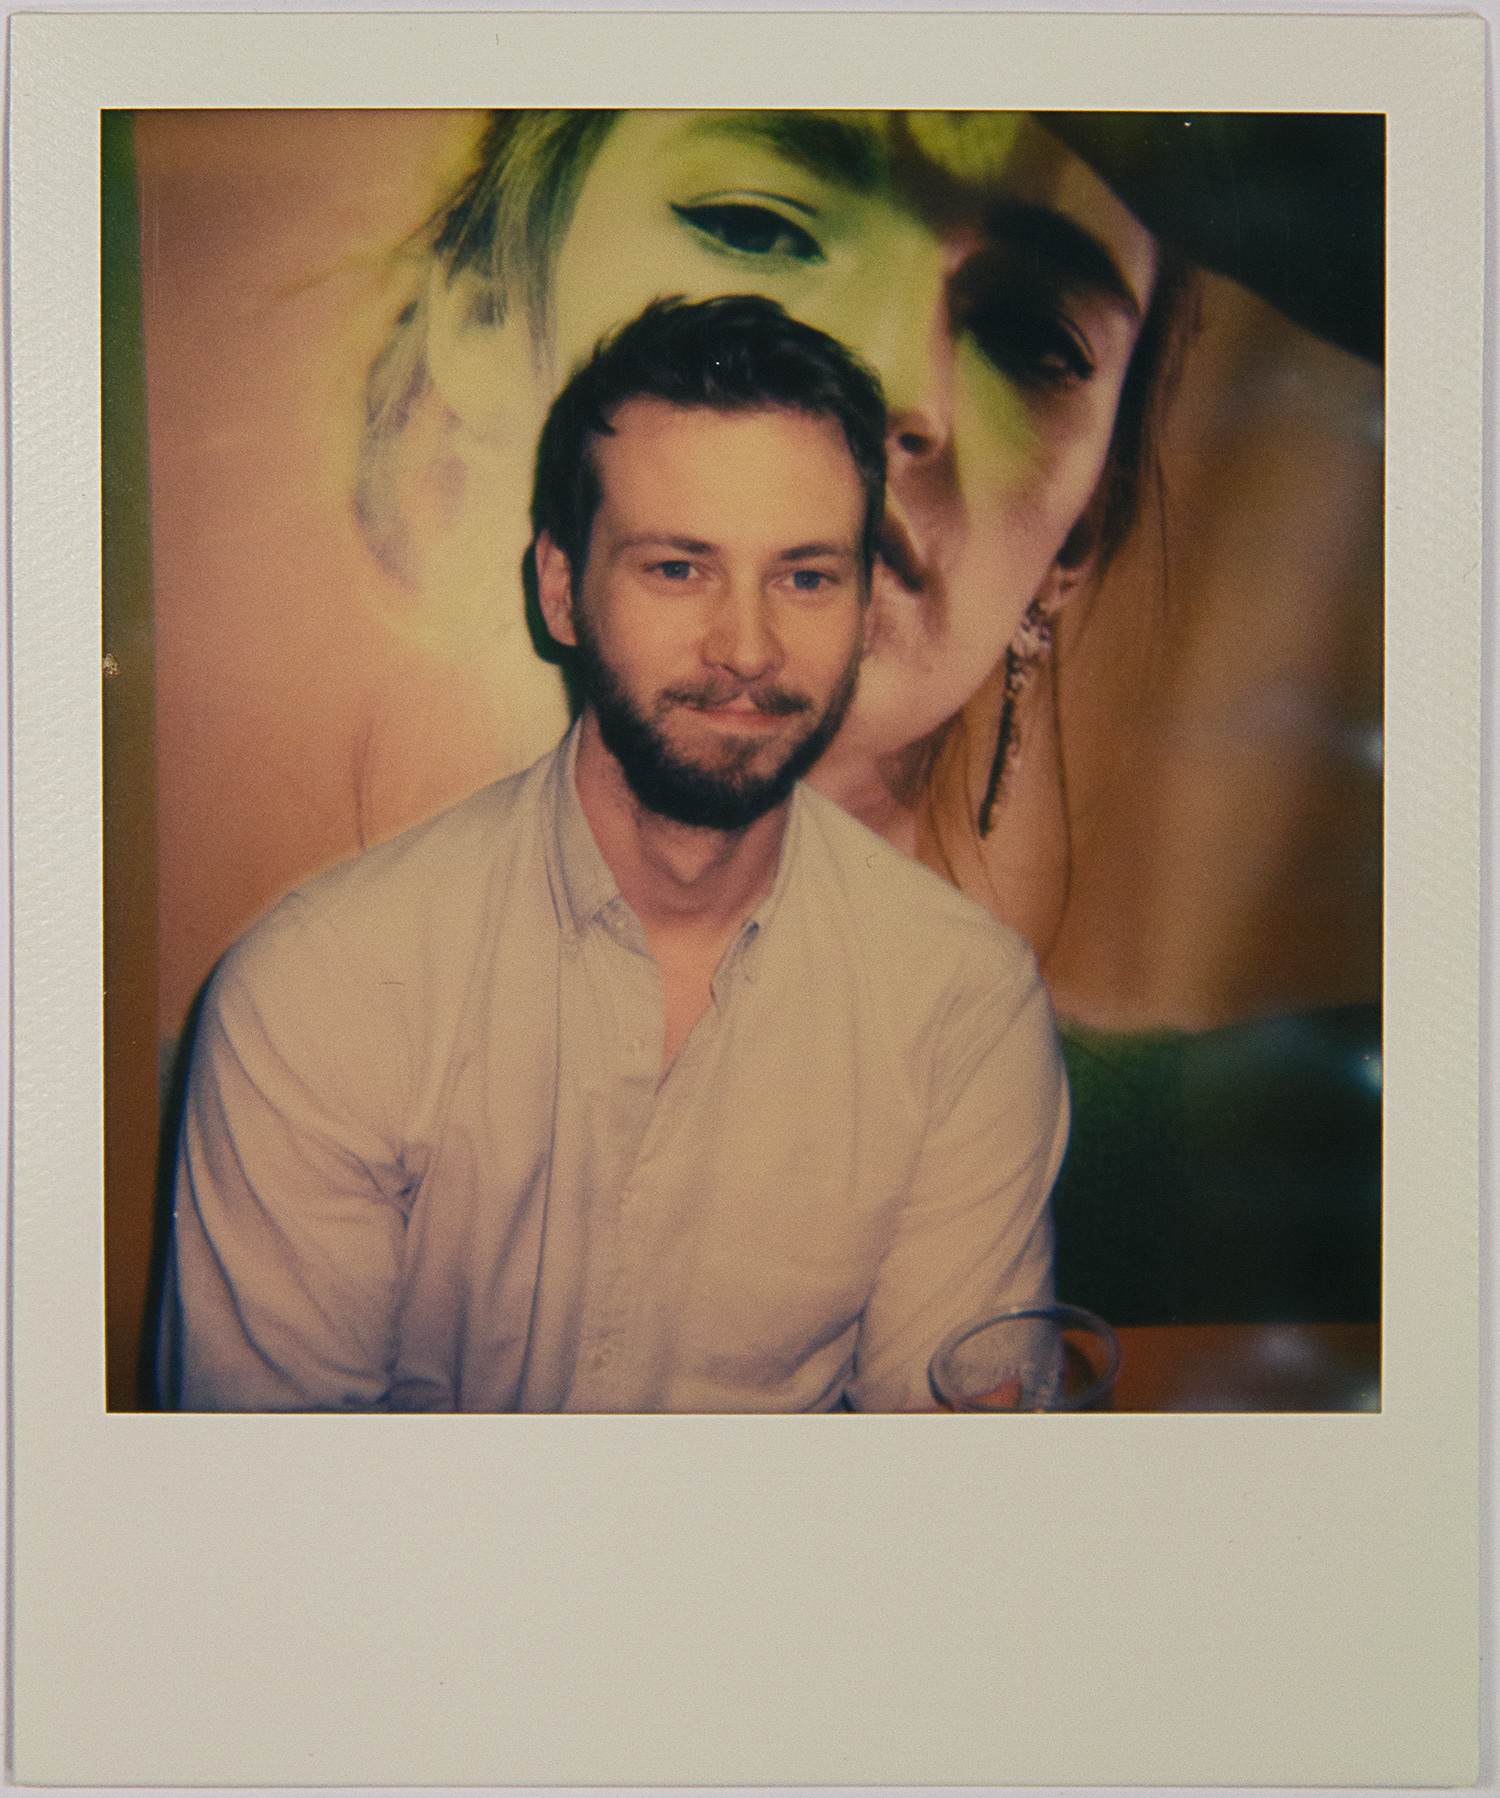 PYLOT ISSUE 04 LAUNCH PARTY IMPOSSIBLE PROJECT 19